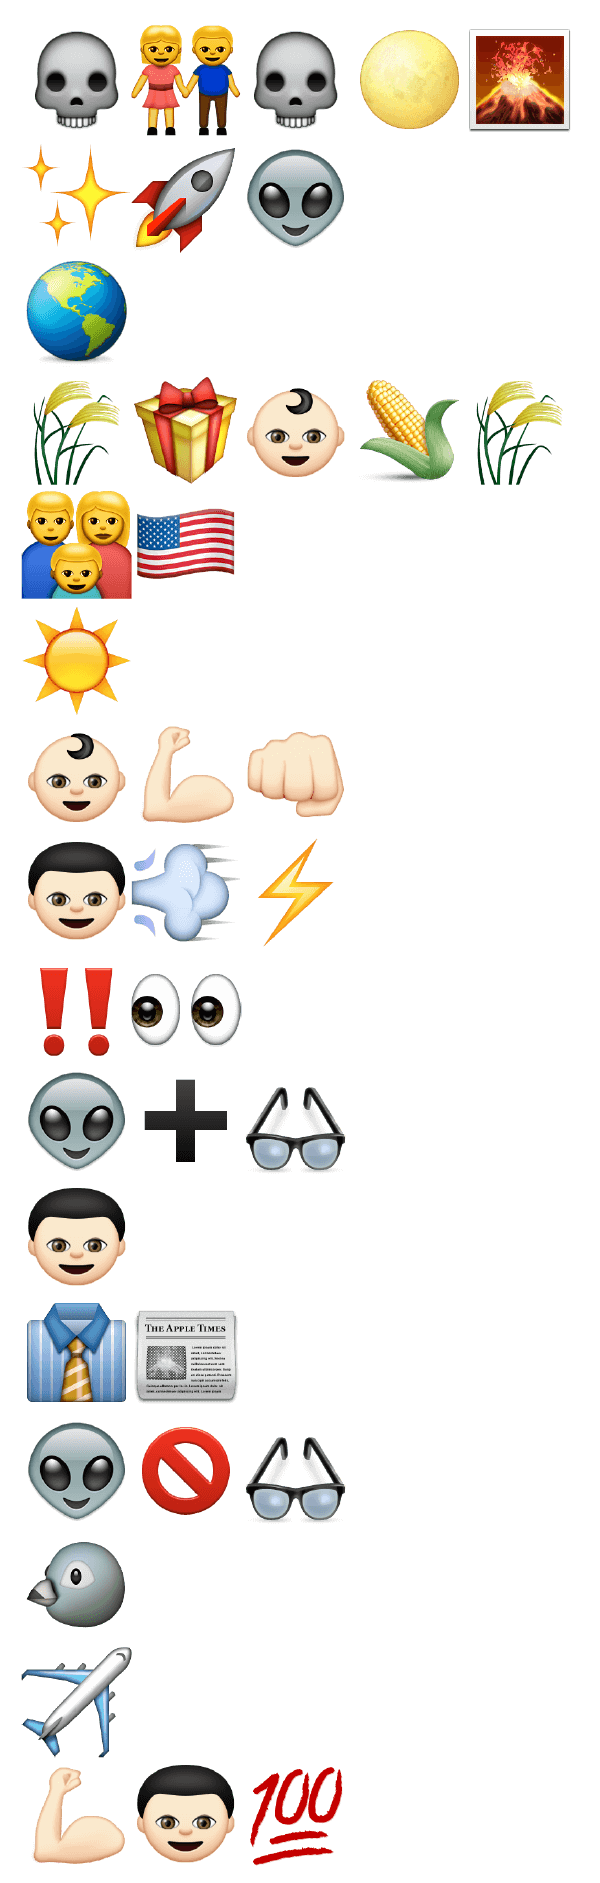 10 Superhero Origin Stories Told with Emoji